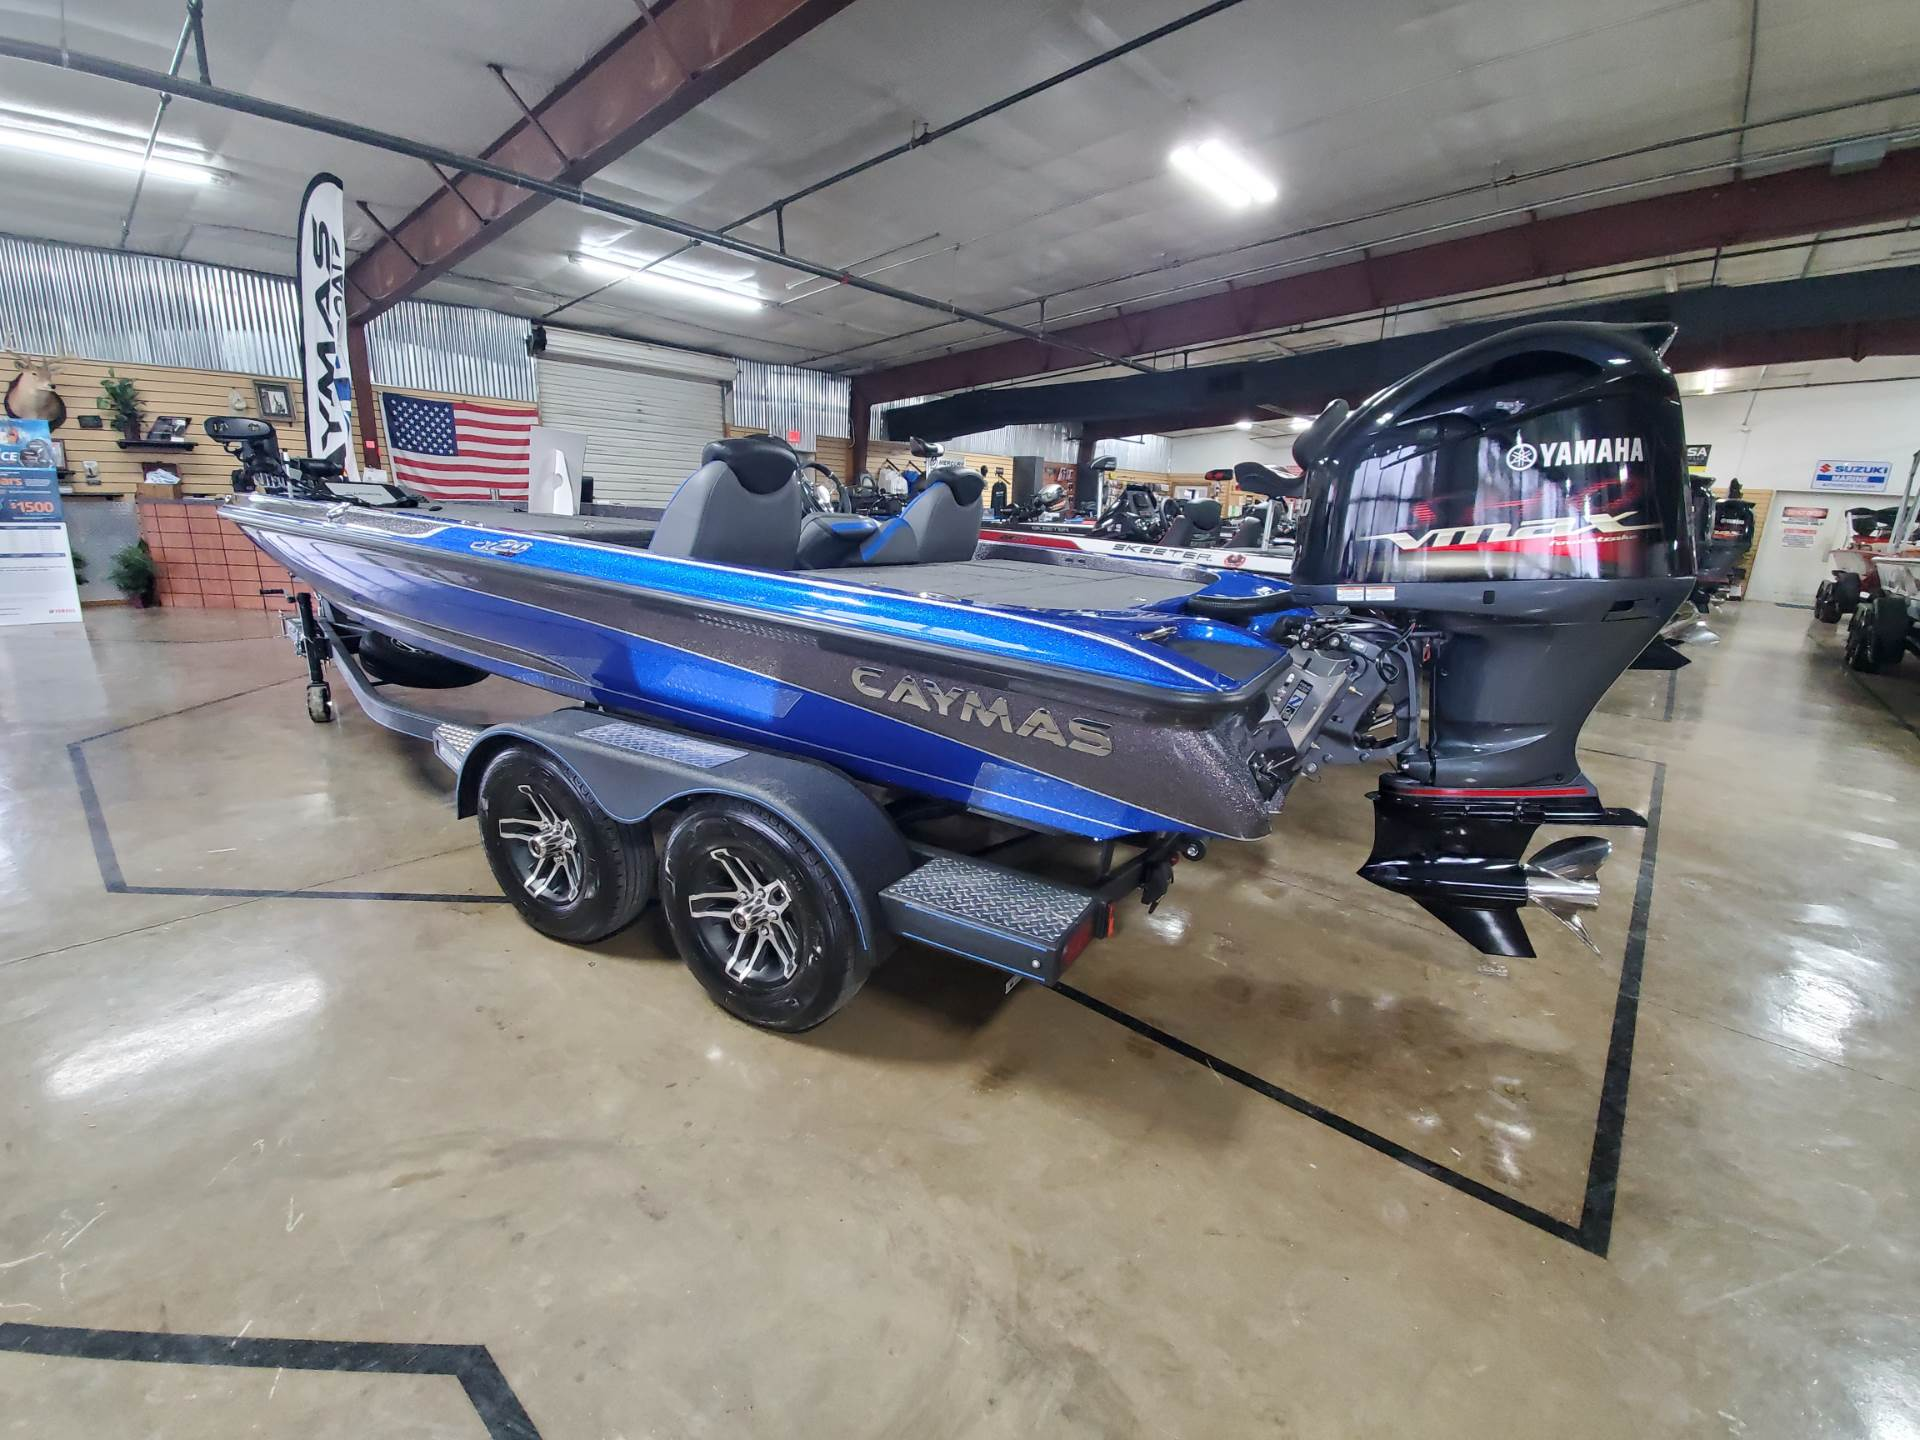 2020 CAYMAS BOATS CX20 Pro in West Monroe, Louisiana - Photo 1